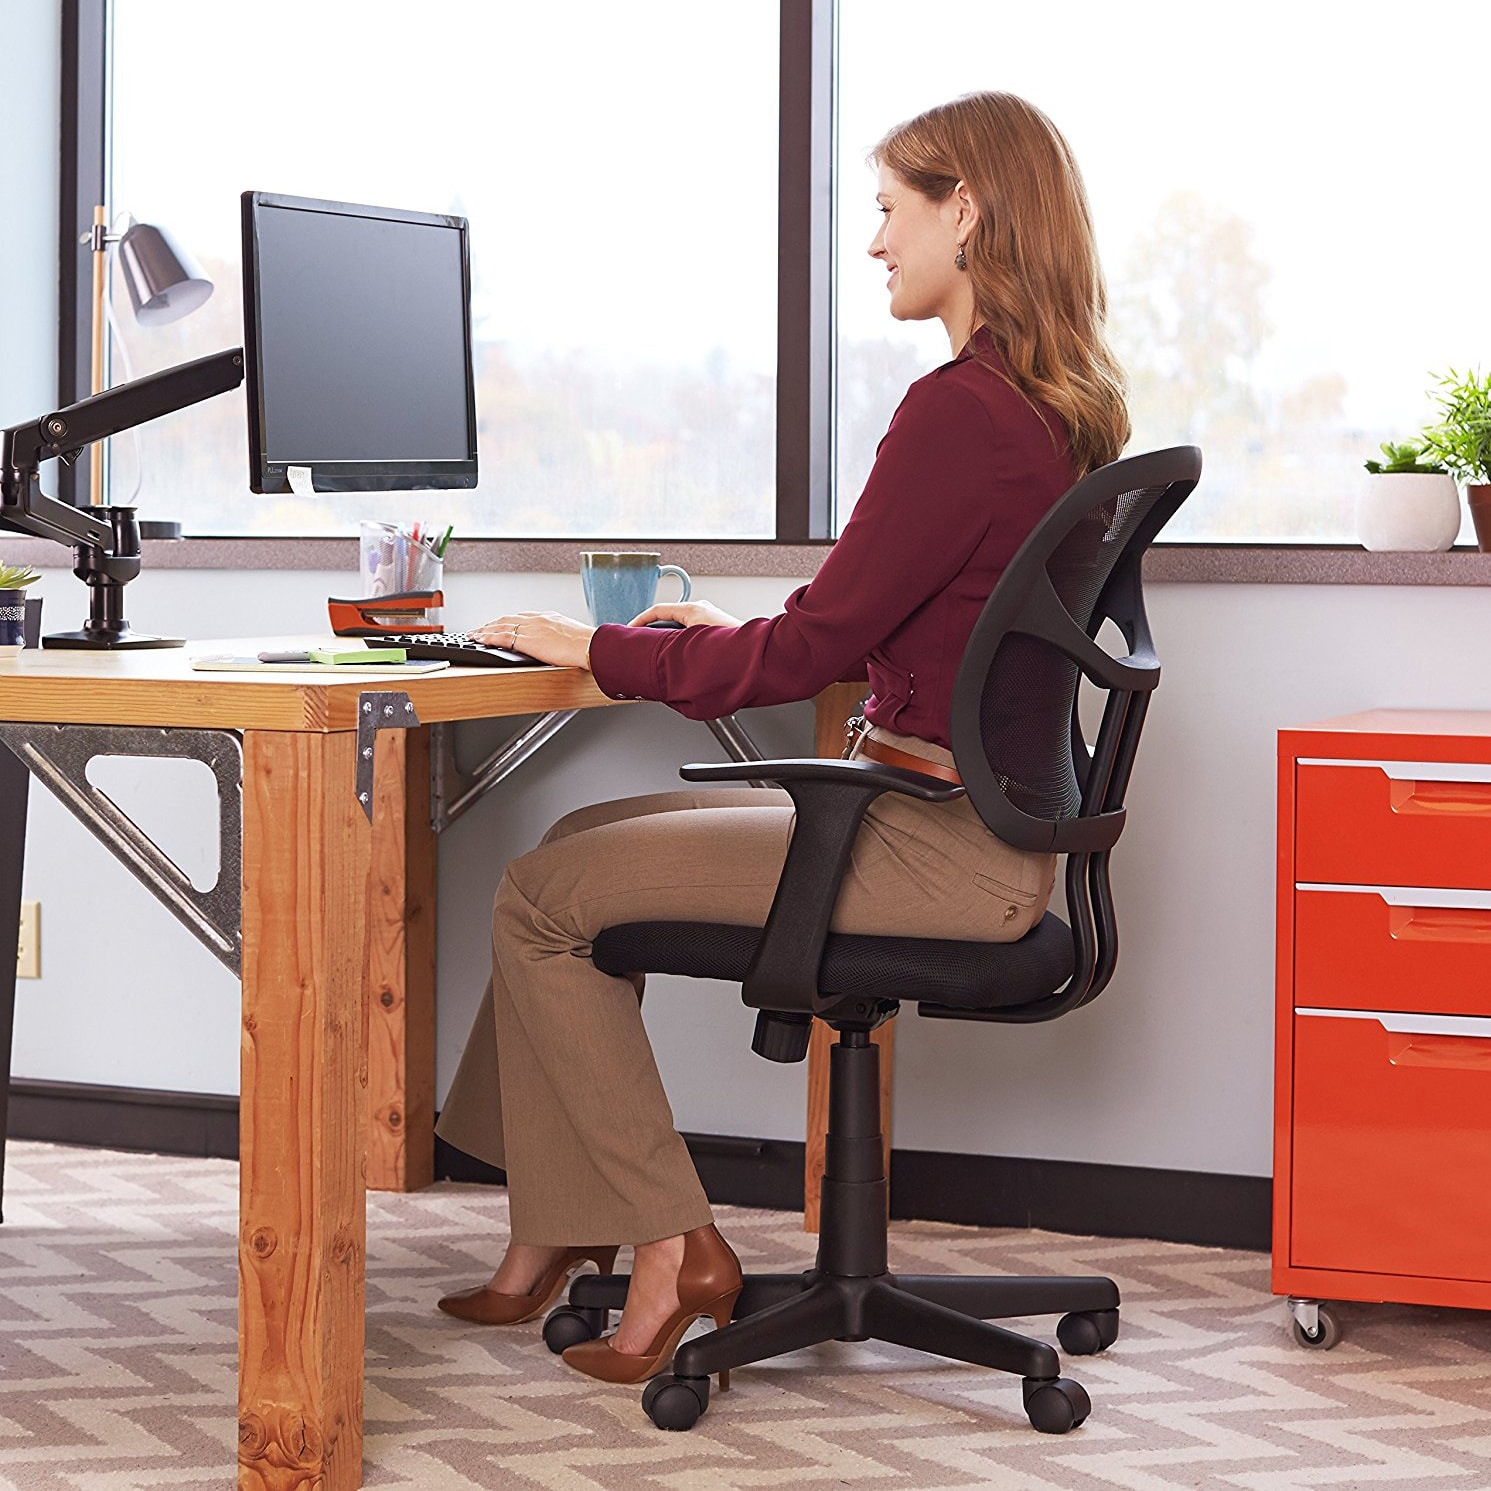 Top 10 Best Standing Desk Chairs In 2020 Reviews